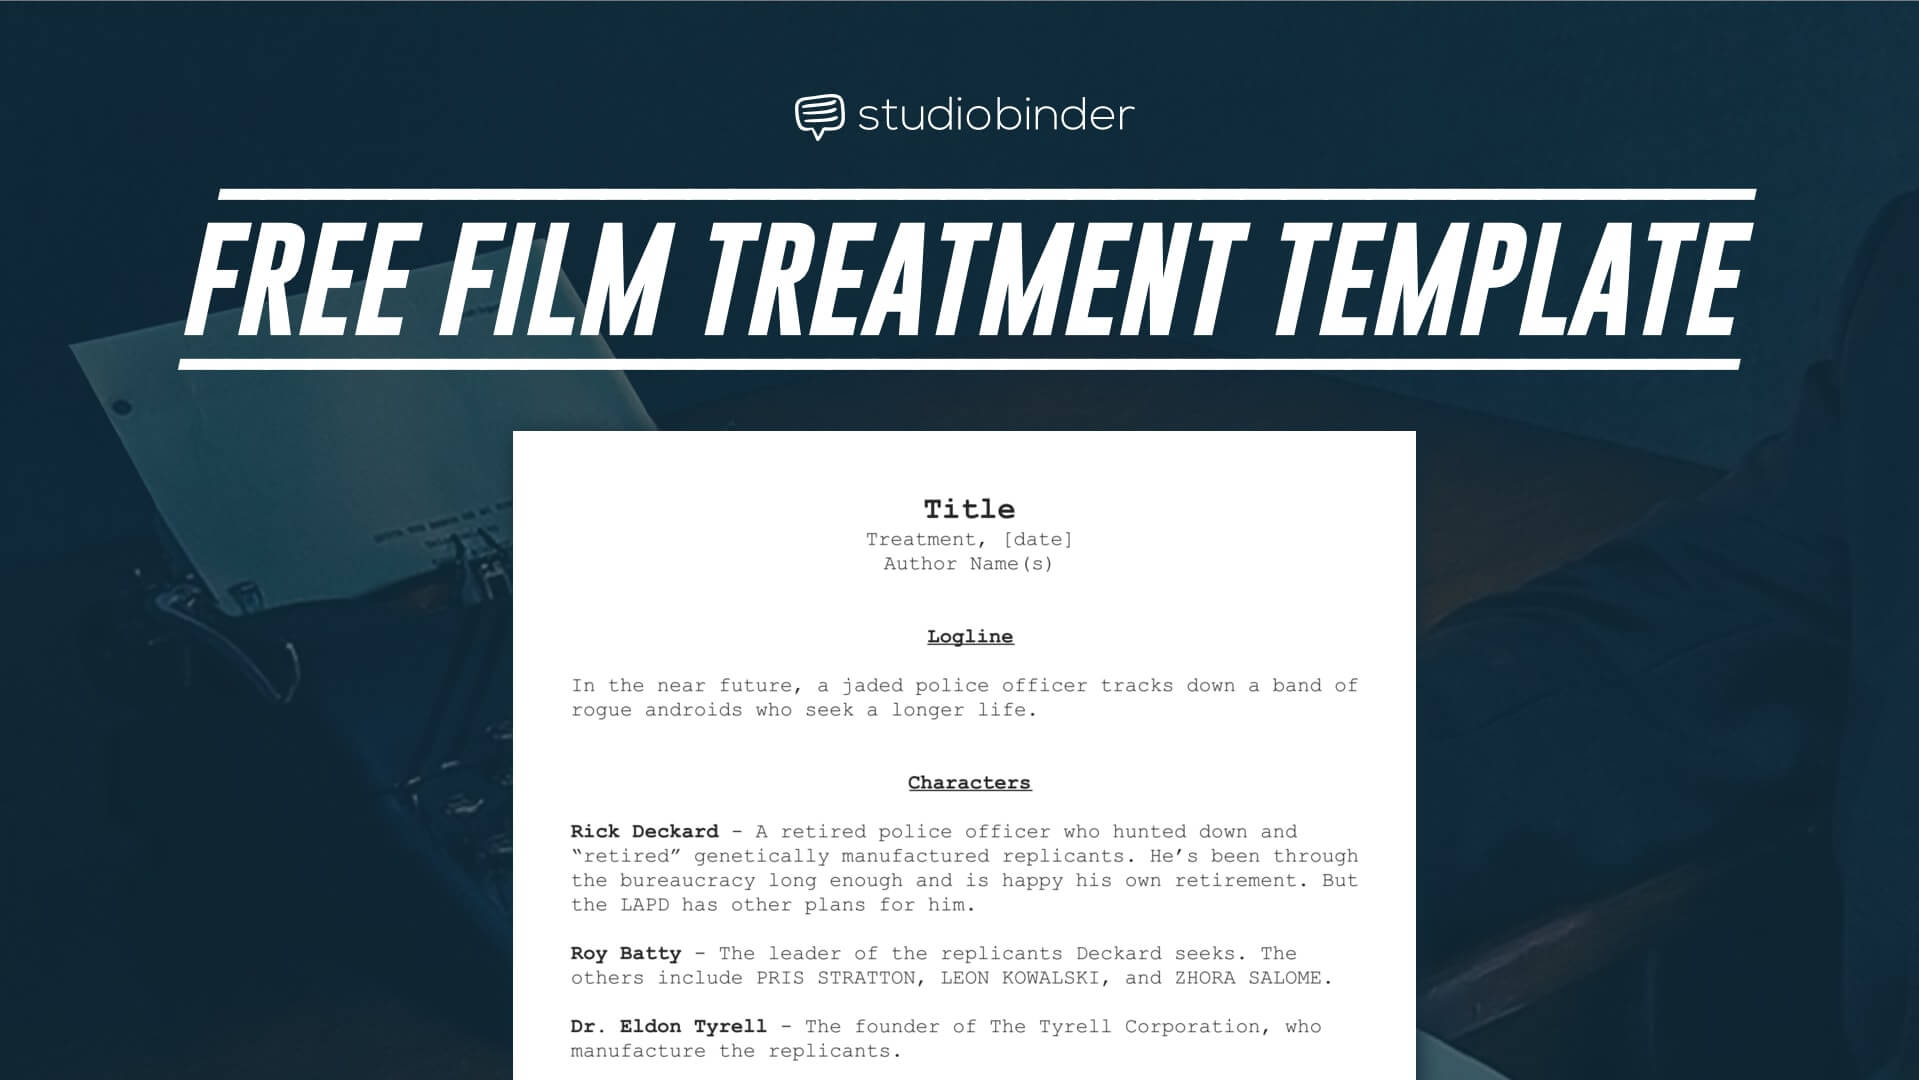 download your free film treatment template right now